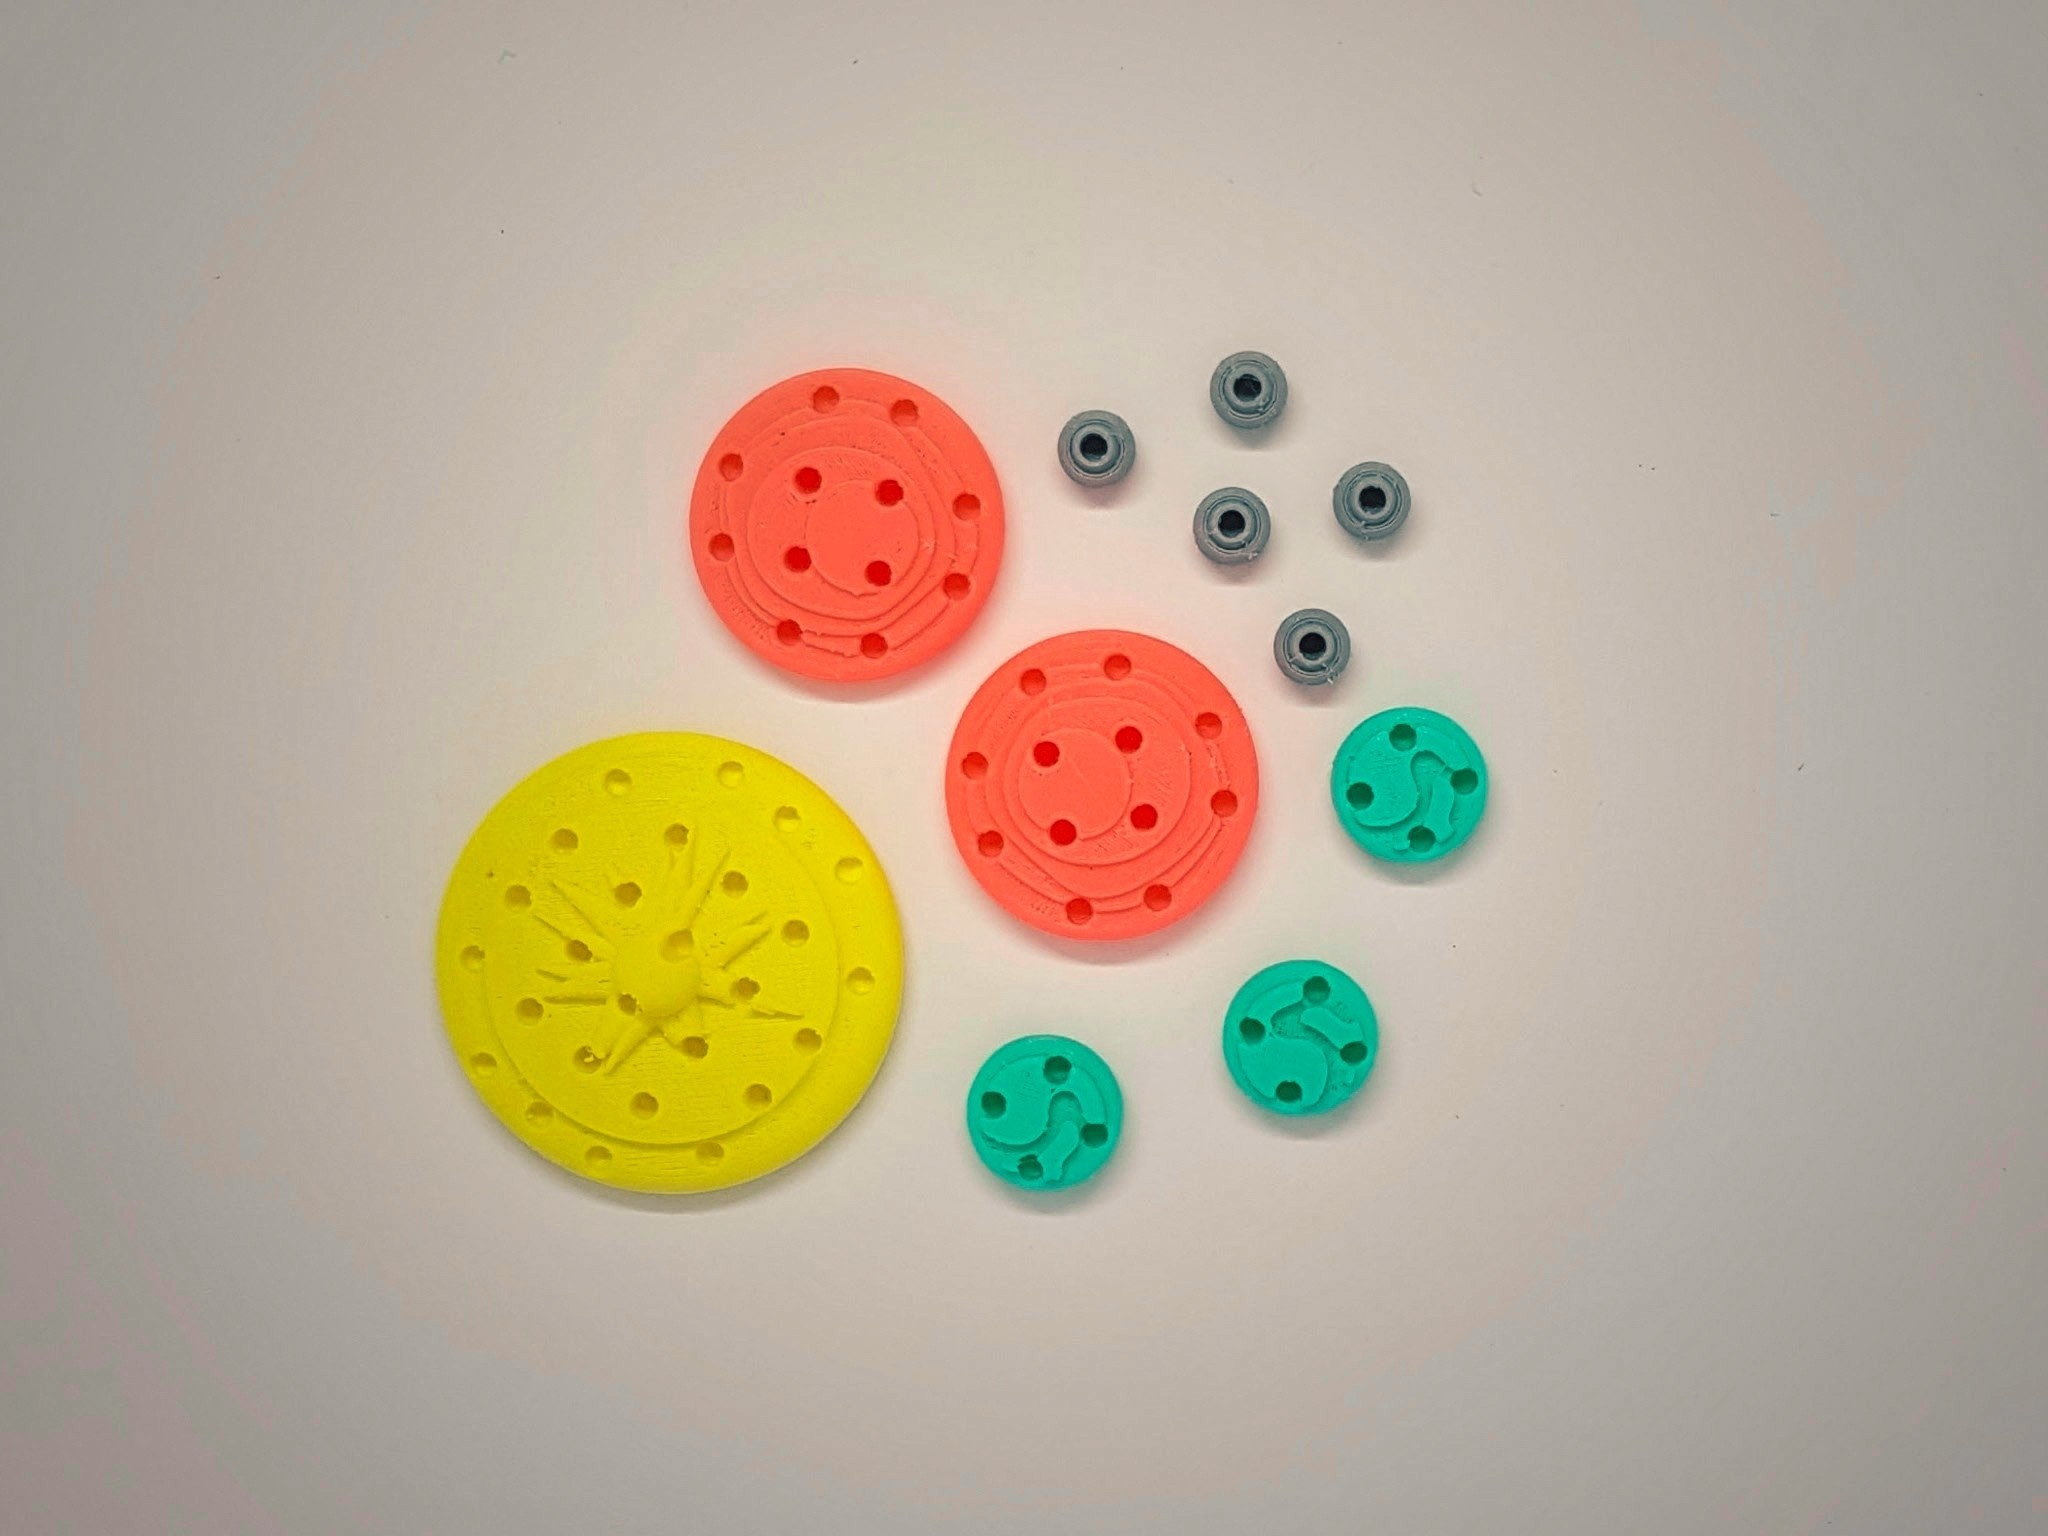 Celestial_Bodies_2a_OK.jpg Download free STL file Find My Planets - Guessing Game (Battleship style) • 3D printer object, Relicae